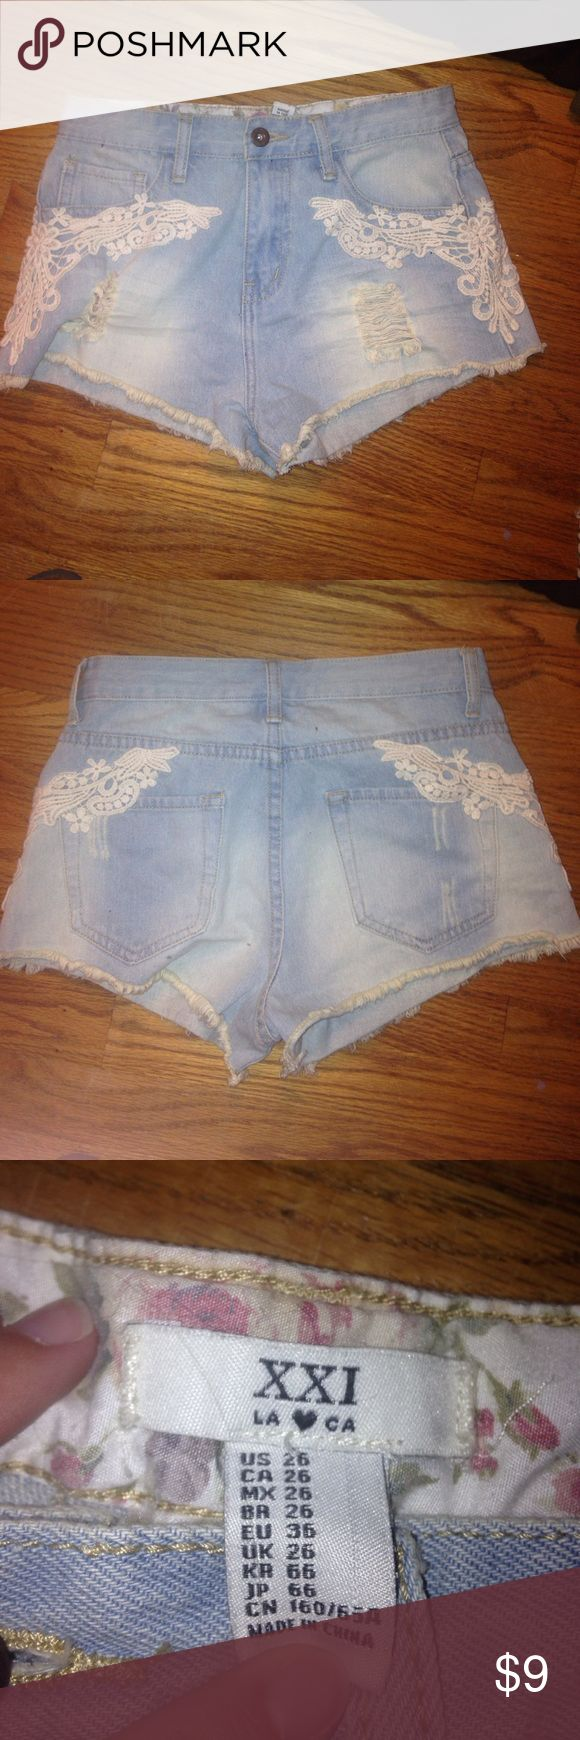 White lace jean shorts True to size Forever 21 Shorts